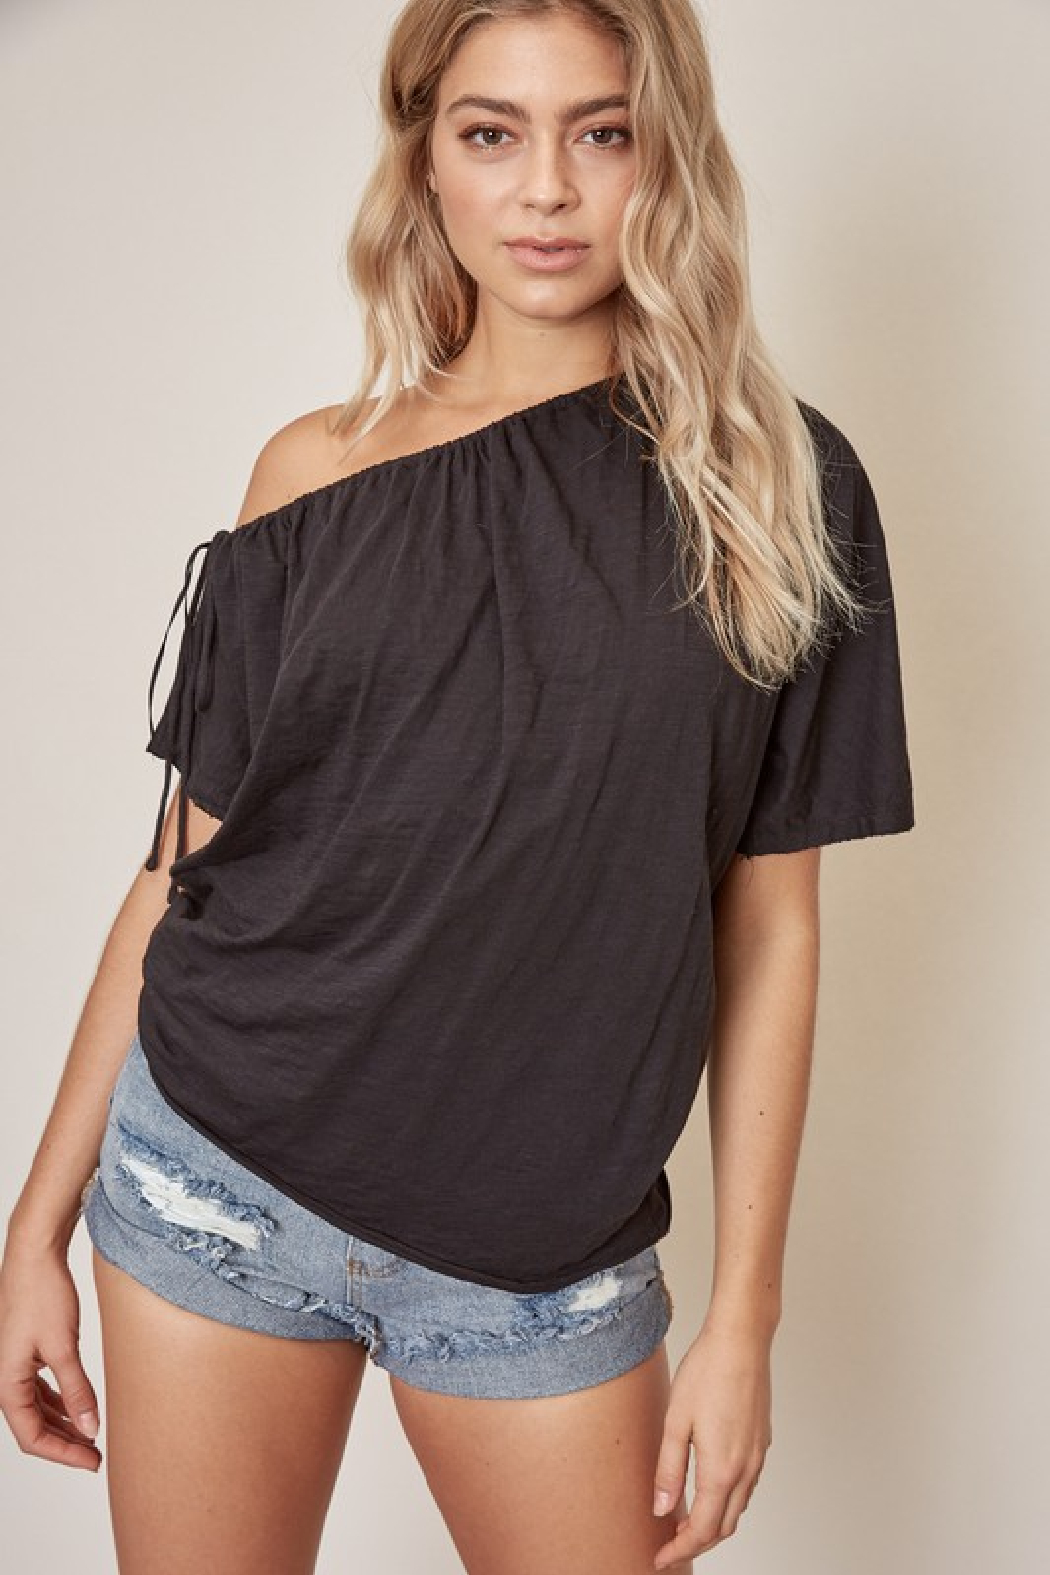 Mustard Seed One Shoulder Cotton Top - Main Image